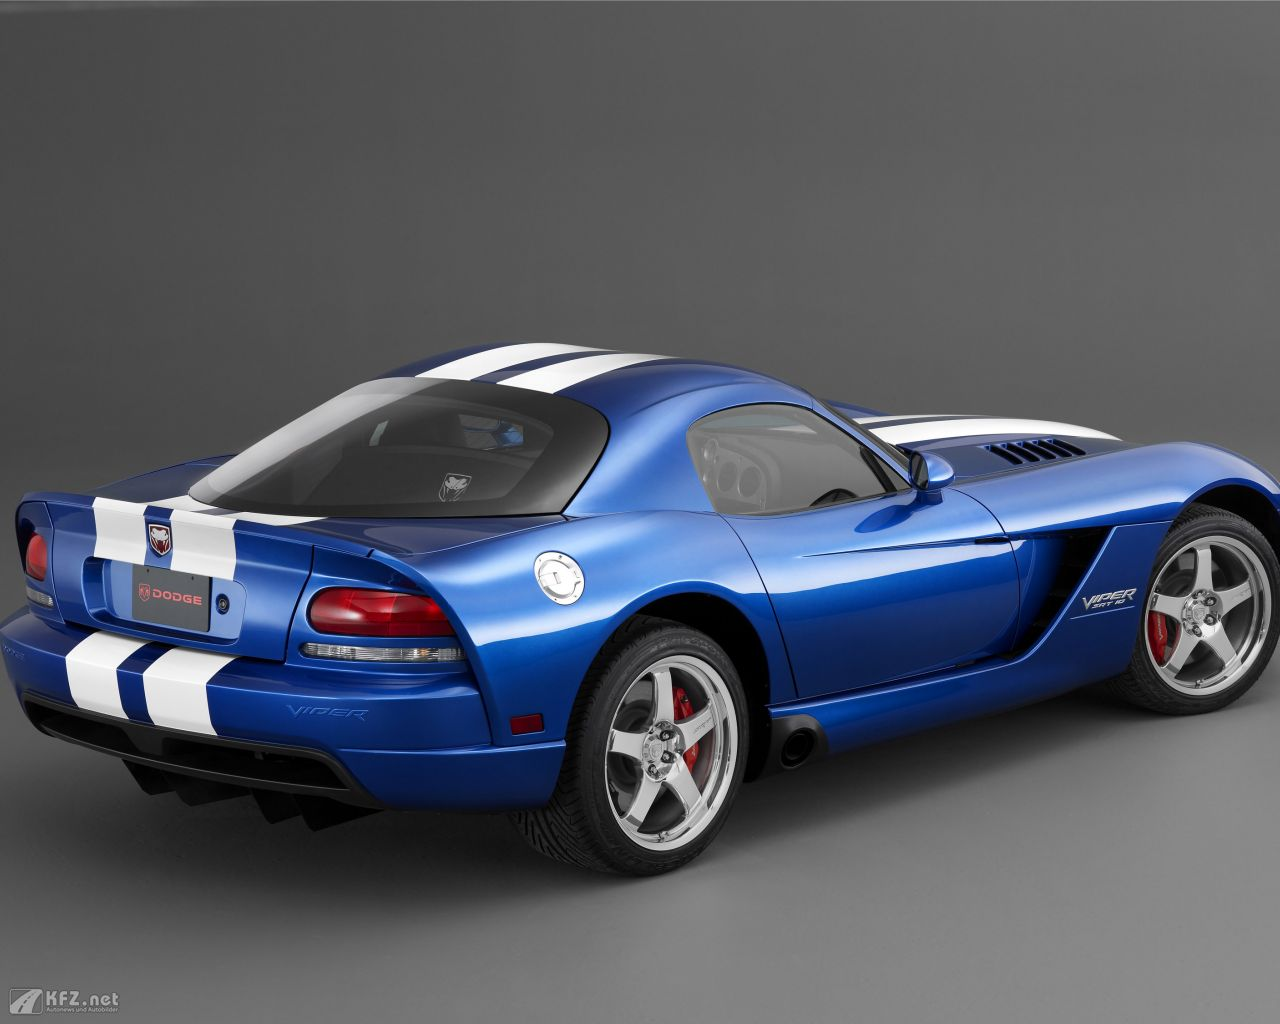 chrysler-dodge-viper-1280x1024-3